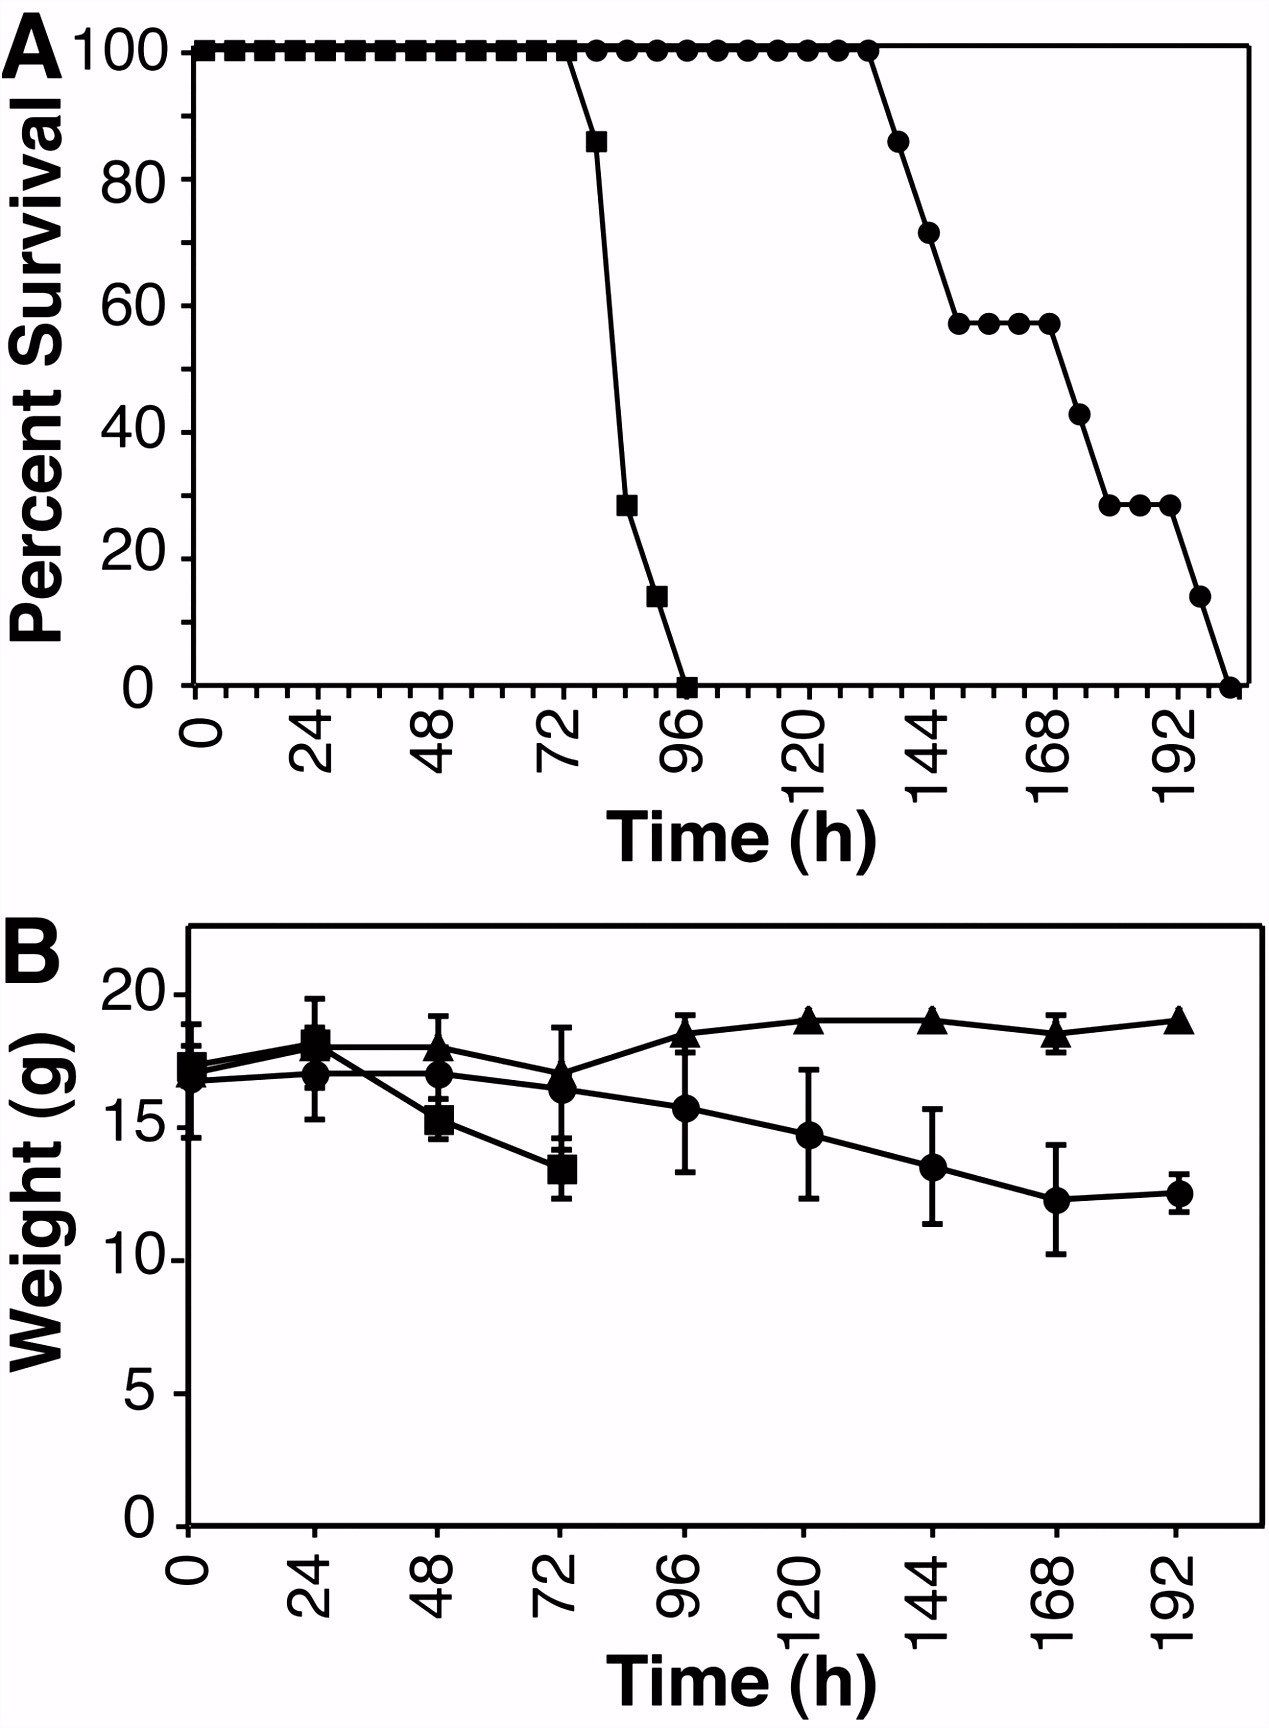 UL54 Null Pseudorabies Virus Is Attenuated in Mice but Productively